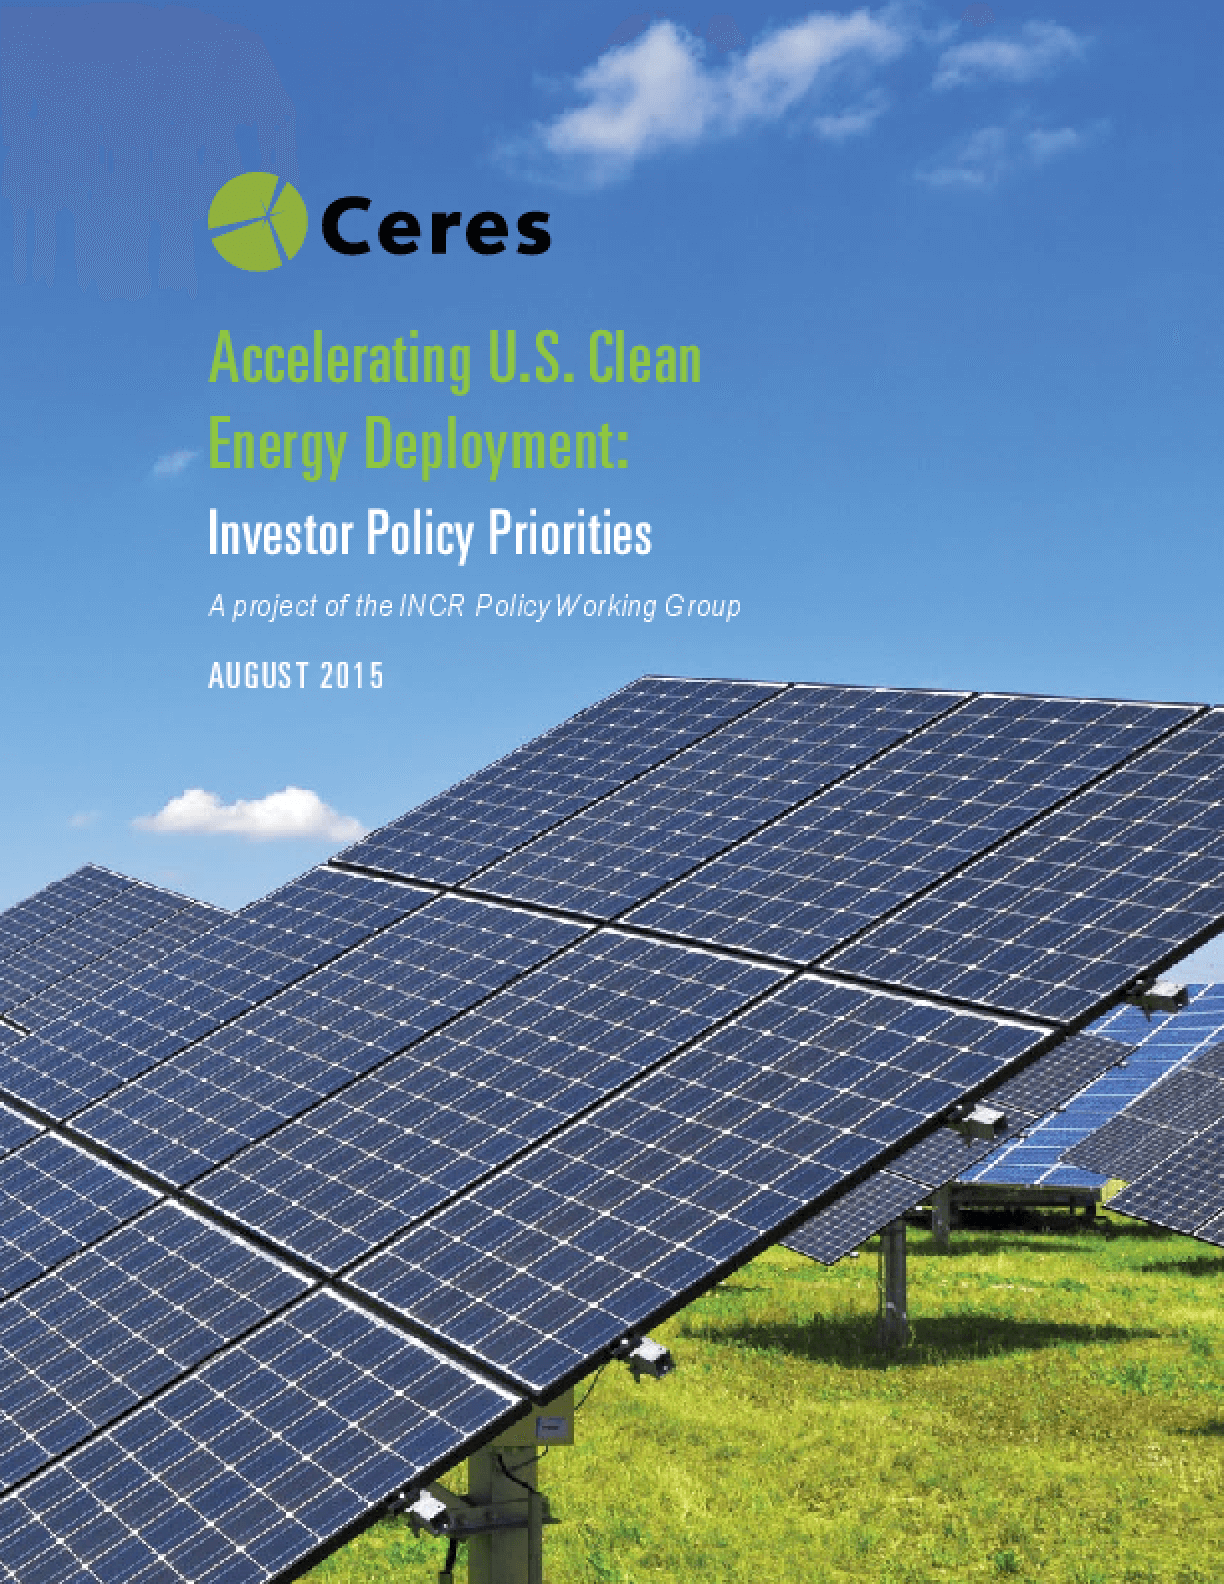 Accelerating U.S. Clean Energy Deployment: Investor Policy Priorities